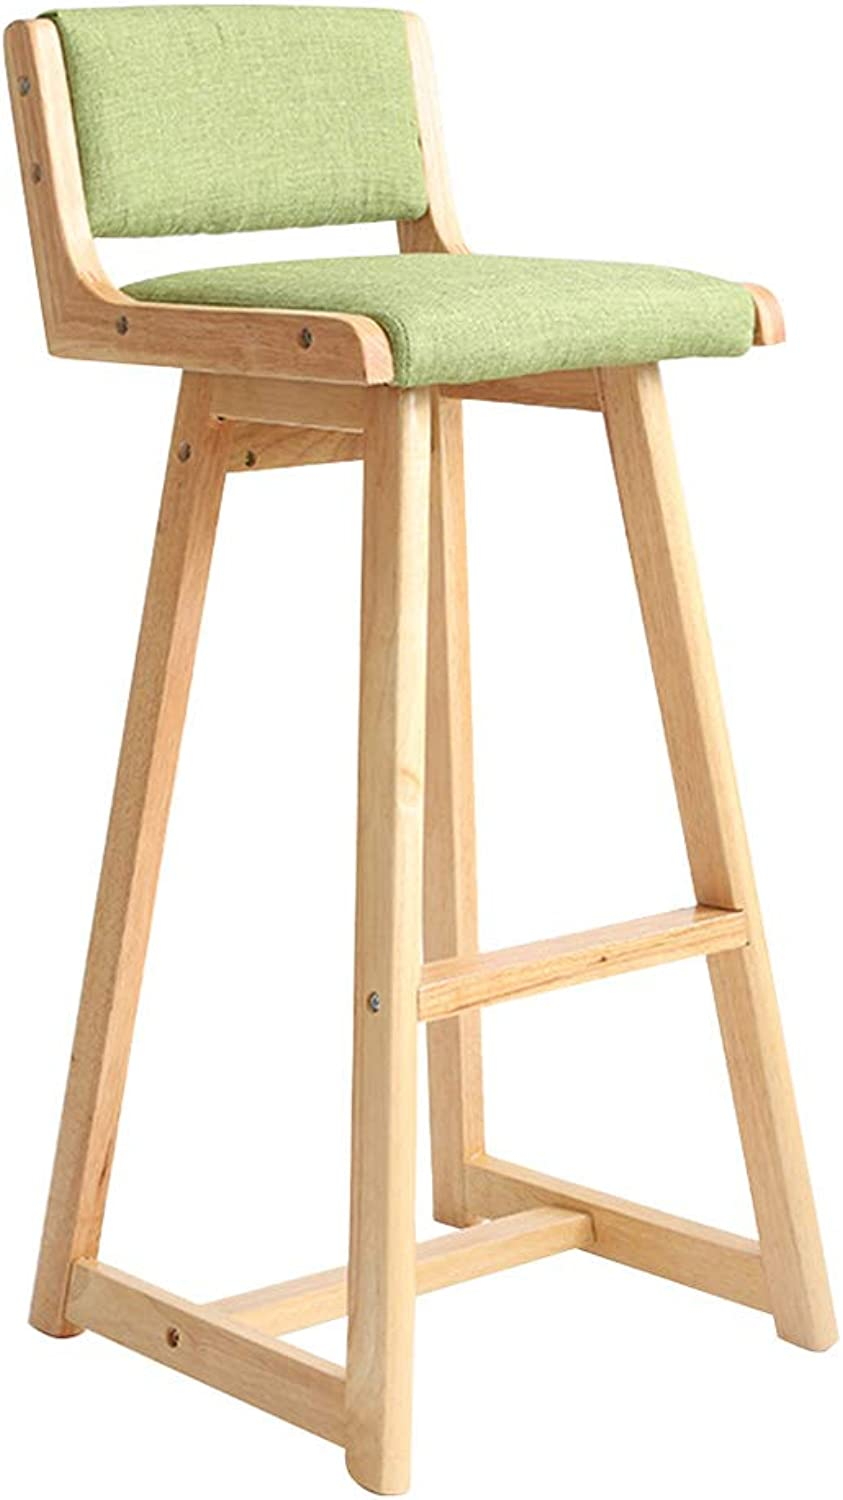 Modern Barstools Chair with Back and Footrest for Kitchen Pub Bar High Stools   Leisure Side Dining Chairs for Bistro Café Counter Height Home Living Room Furniture, Green